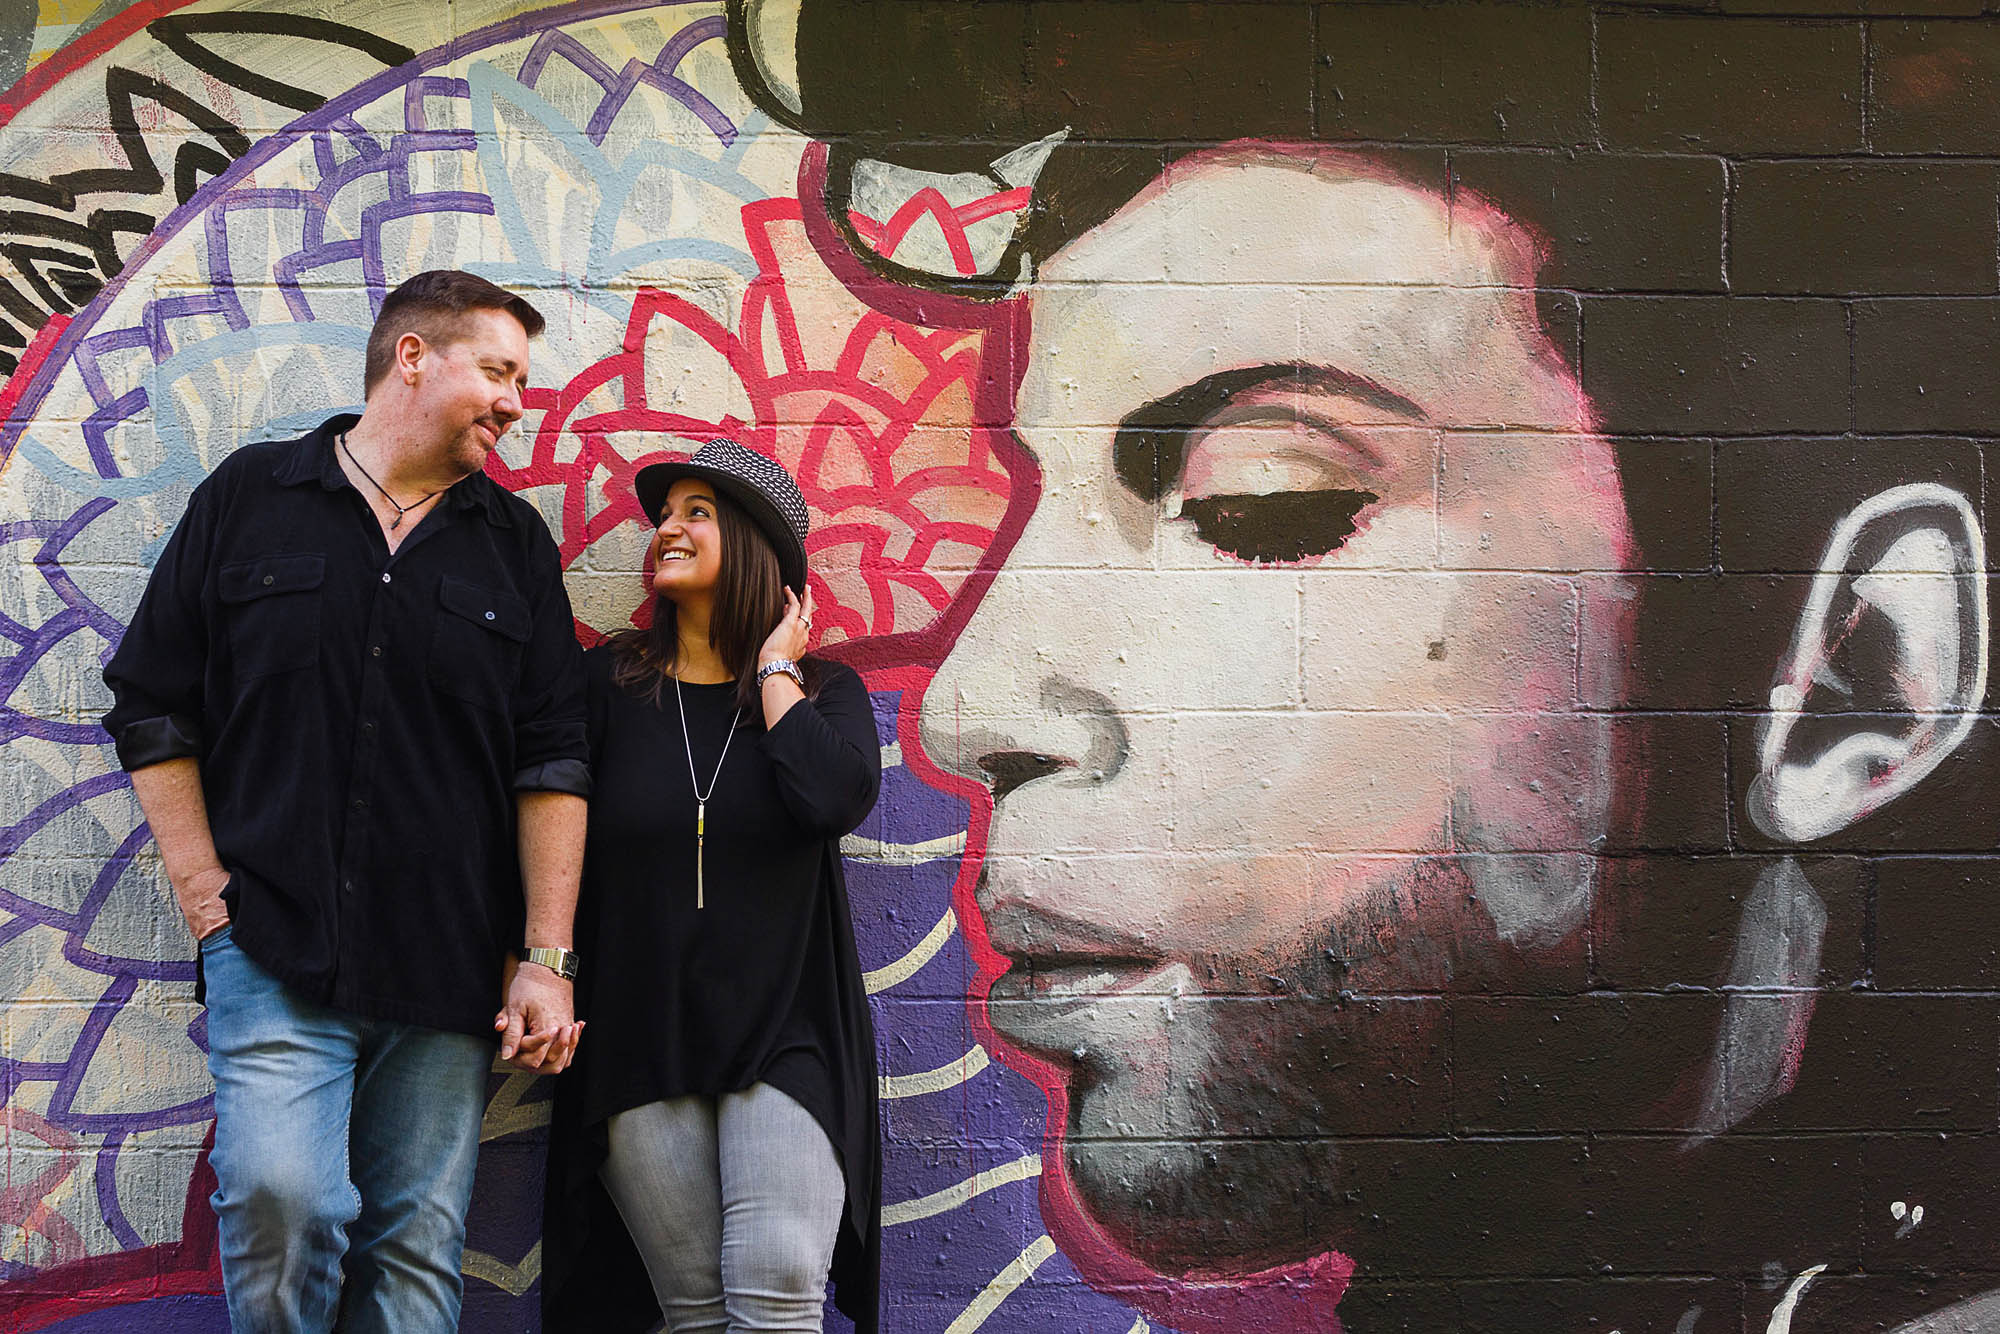 A picture of an engaged couple taken from the knees up holding hands with their heads turned toward each other while they lean back against a brick building in Dayton, Ohio that has been painted with graffiti and a large mural of Prince taking up the entire right side of the photo.